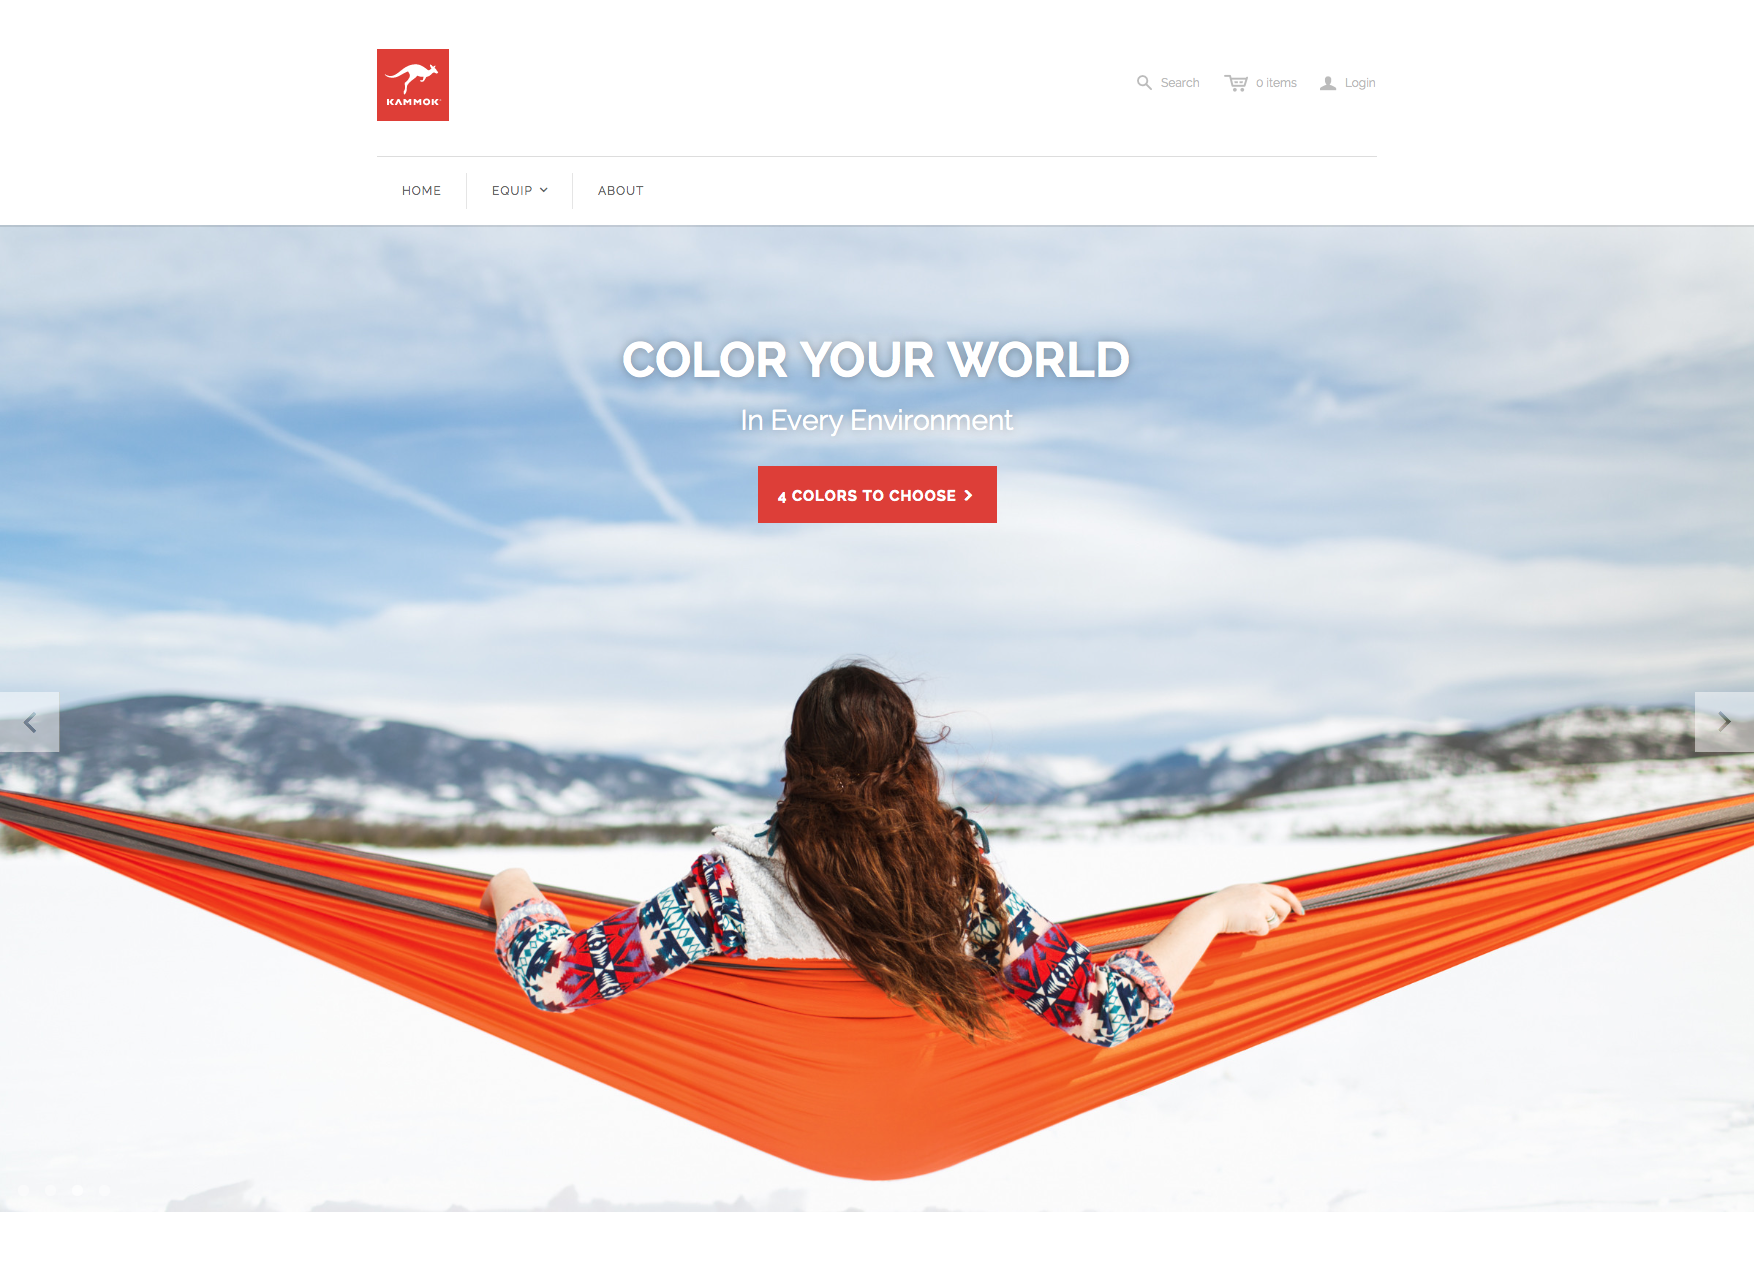 We just launched our brand new website last week and it is amazing! Check it out at http://www.kammok.com #hammock #outdoors #camping